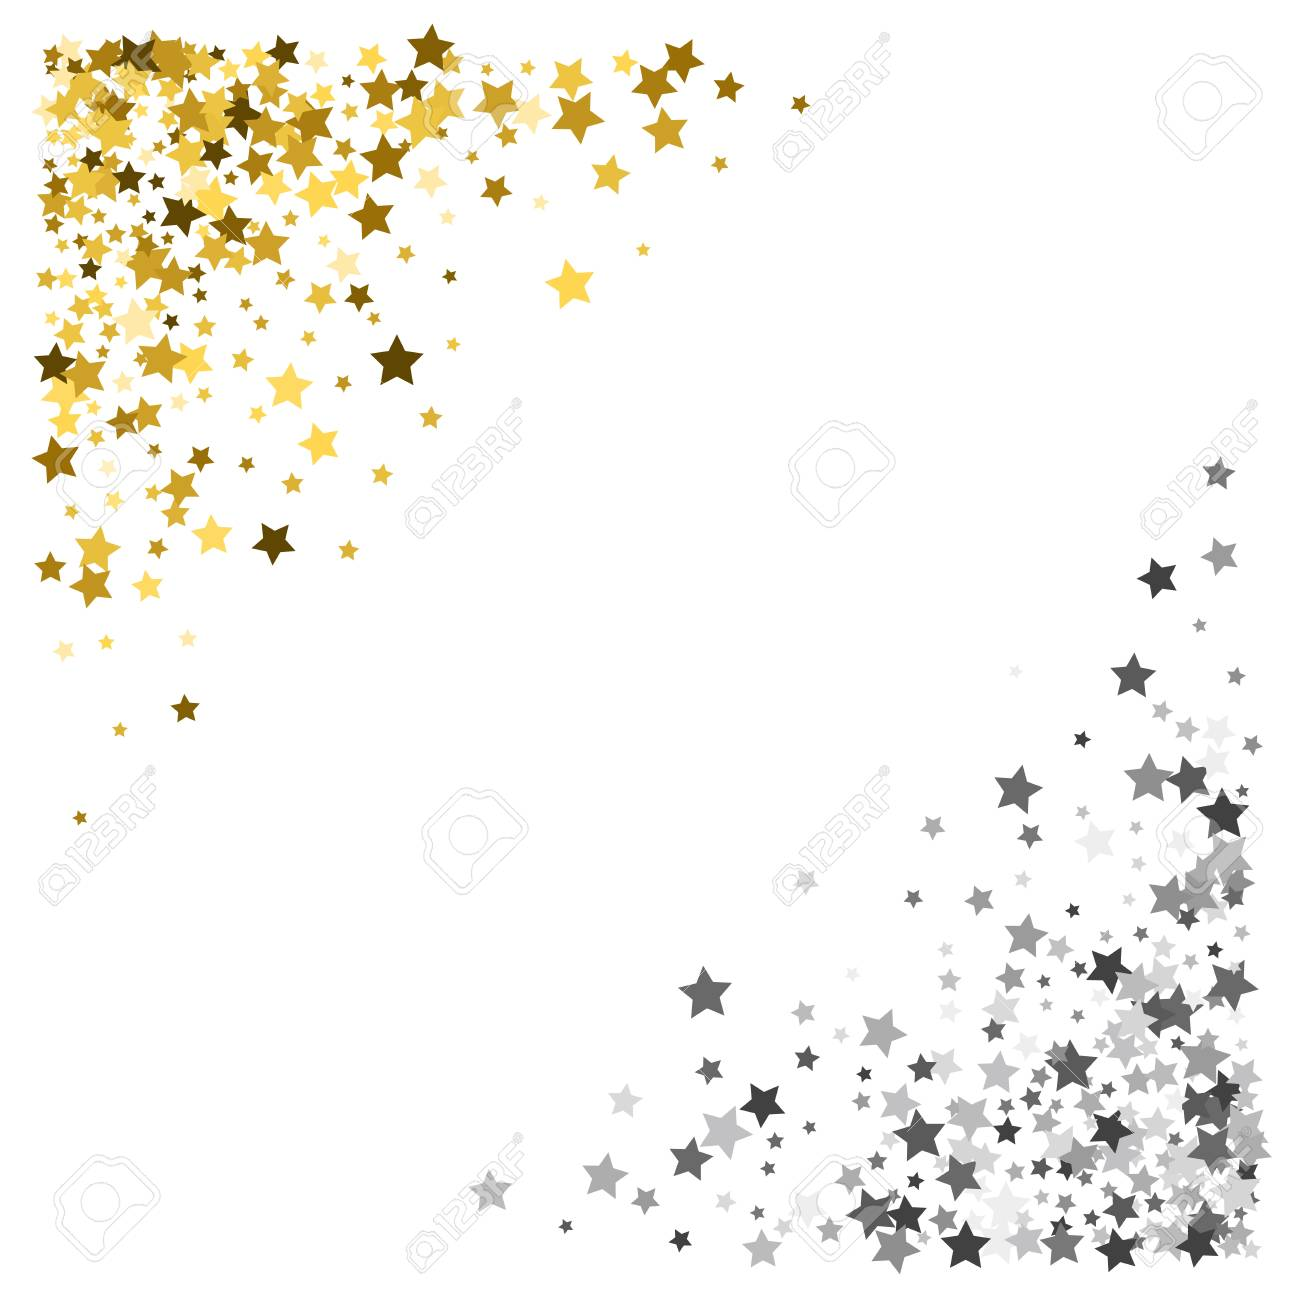 837570ff509c Triangle corner gold and silver frame or border of scatter stars on white  background. Design